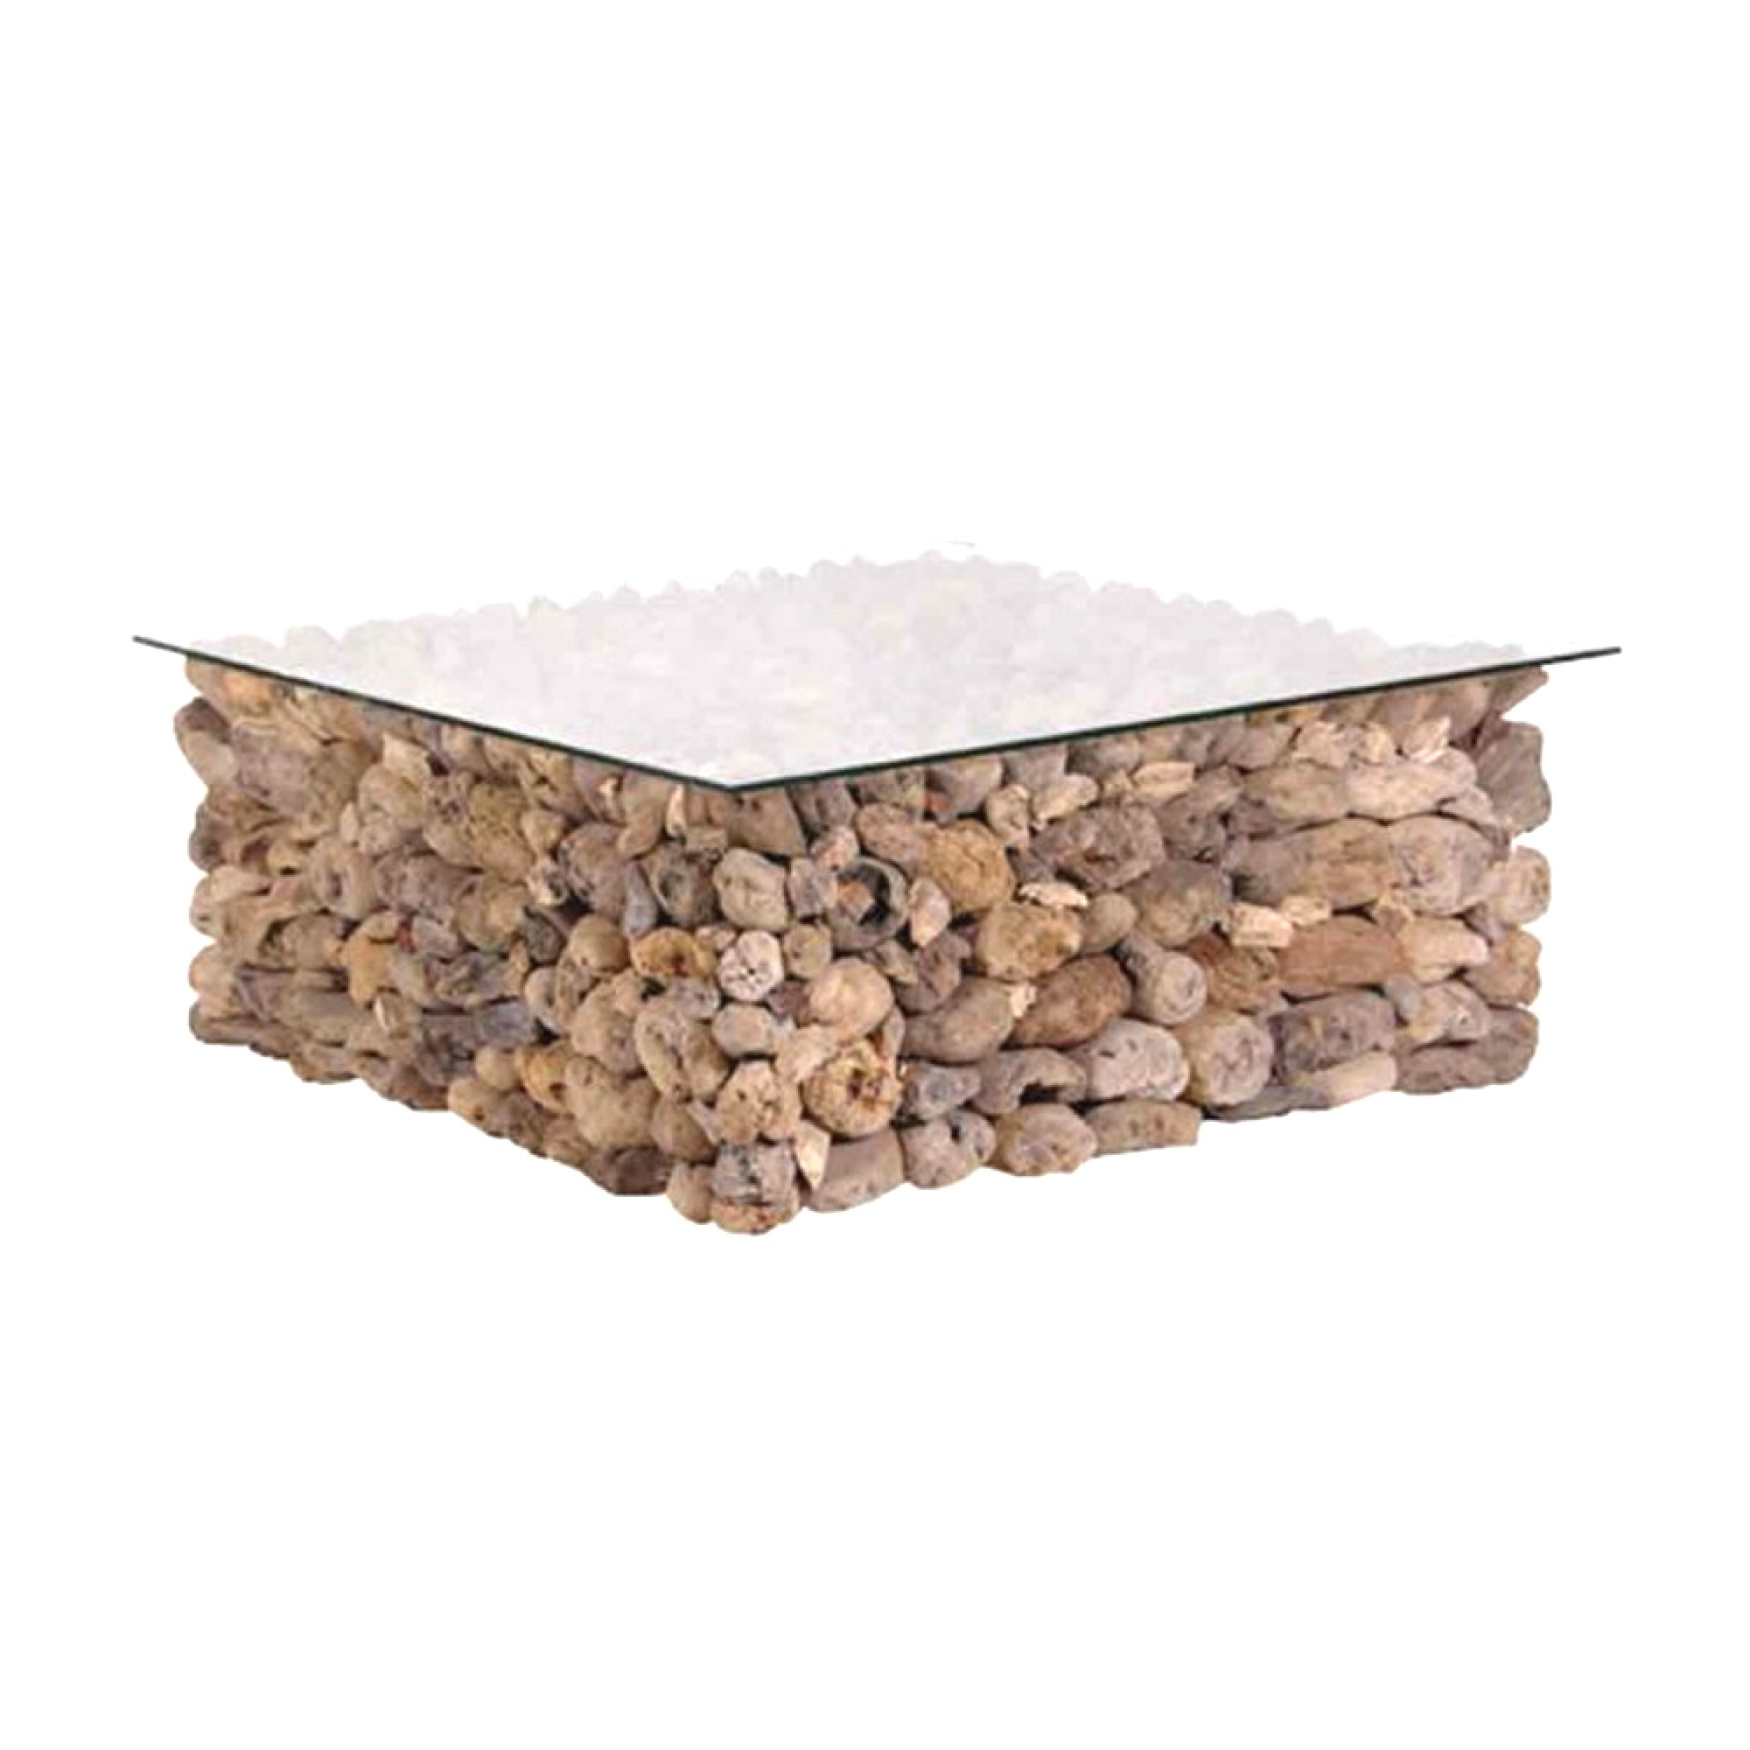 Unlimited Driftwood Coffee Table Teak Root Rectangular With Inside Favorite Carbon Loft Witten Angle Iron And Driftwood Coffee Tables (View 16 of 20)